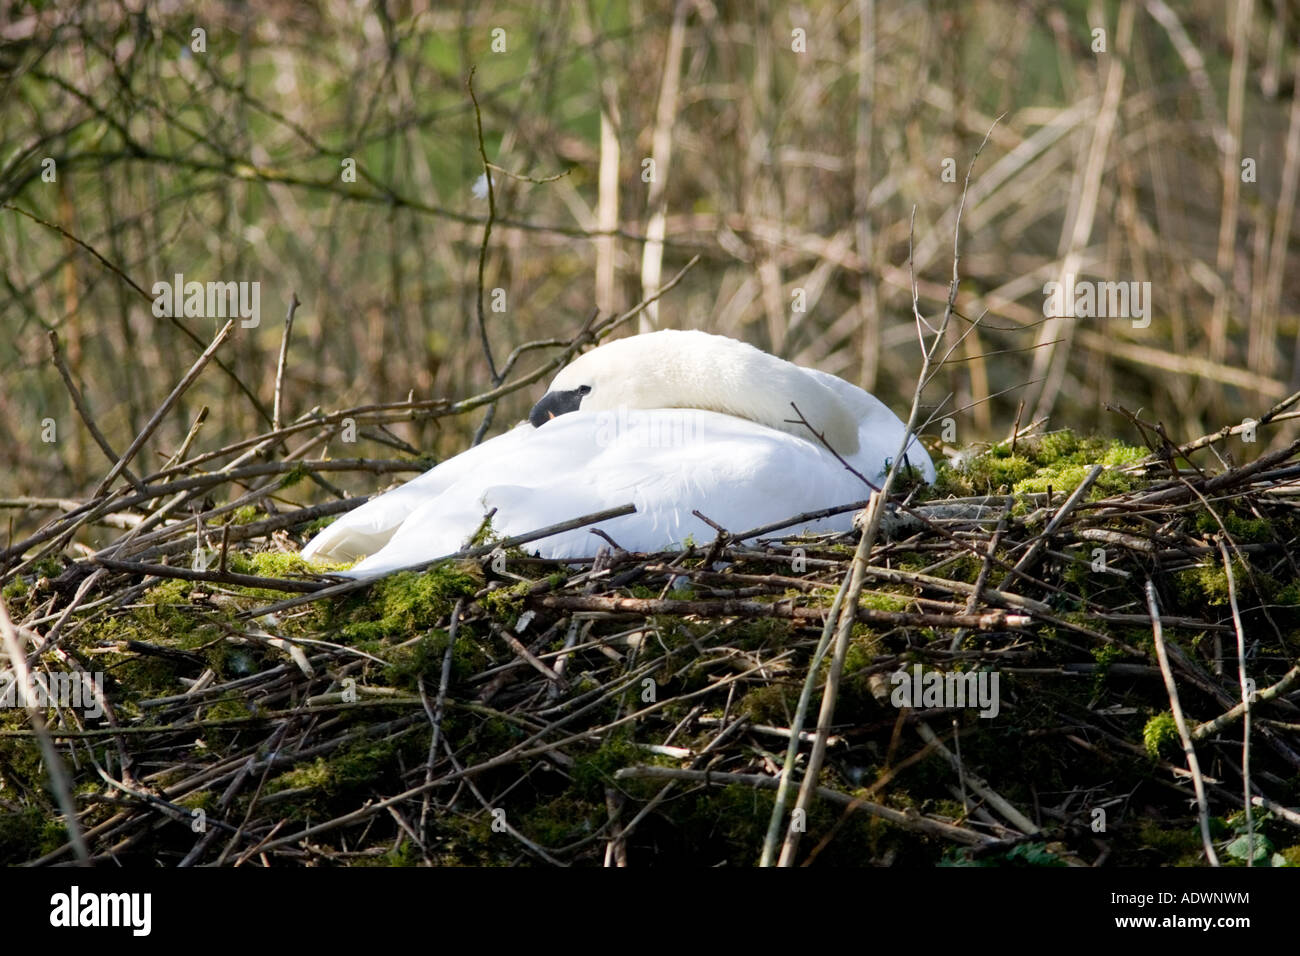 Female mute swan asleep on nest of moss and twigs Donnington Gloucestershire The Cotswolds England United Kingdom - Stock Image